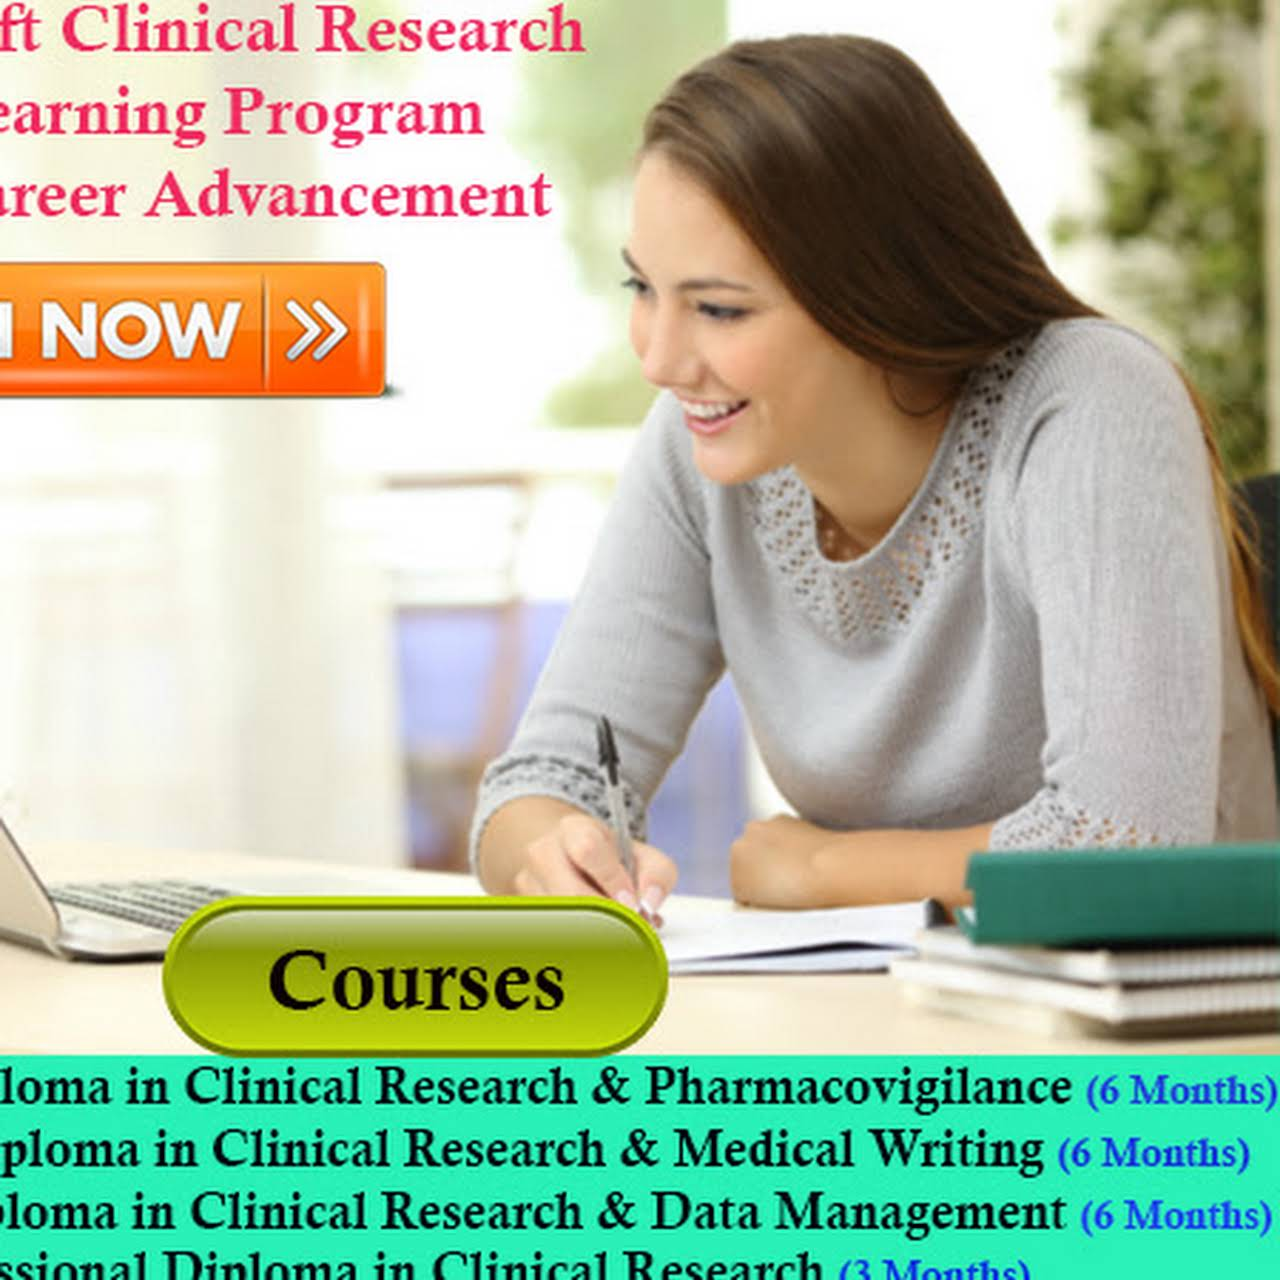 Clinical Research Courses - Research Institute in Mohali